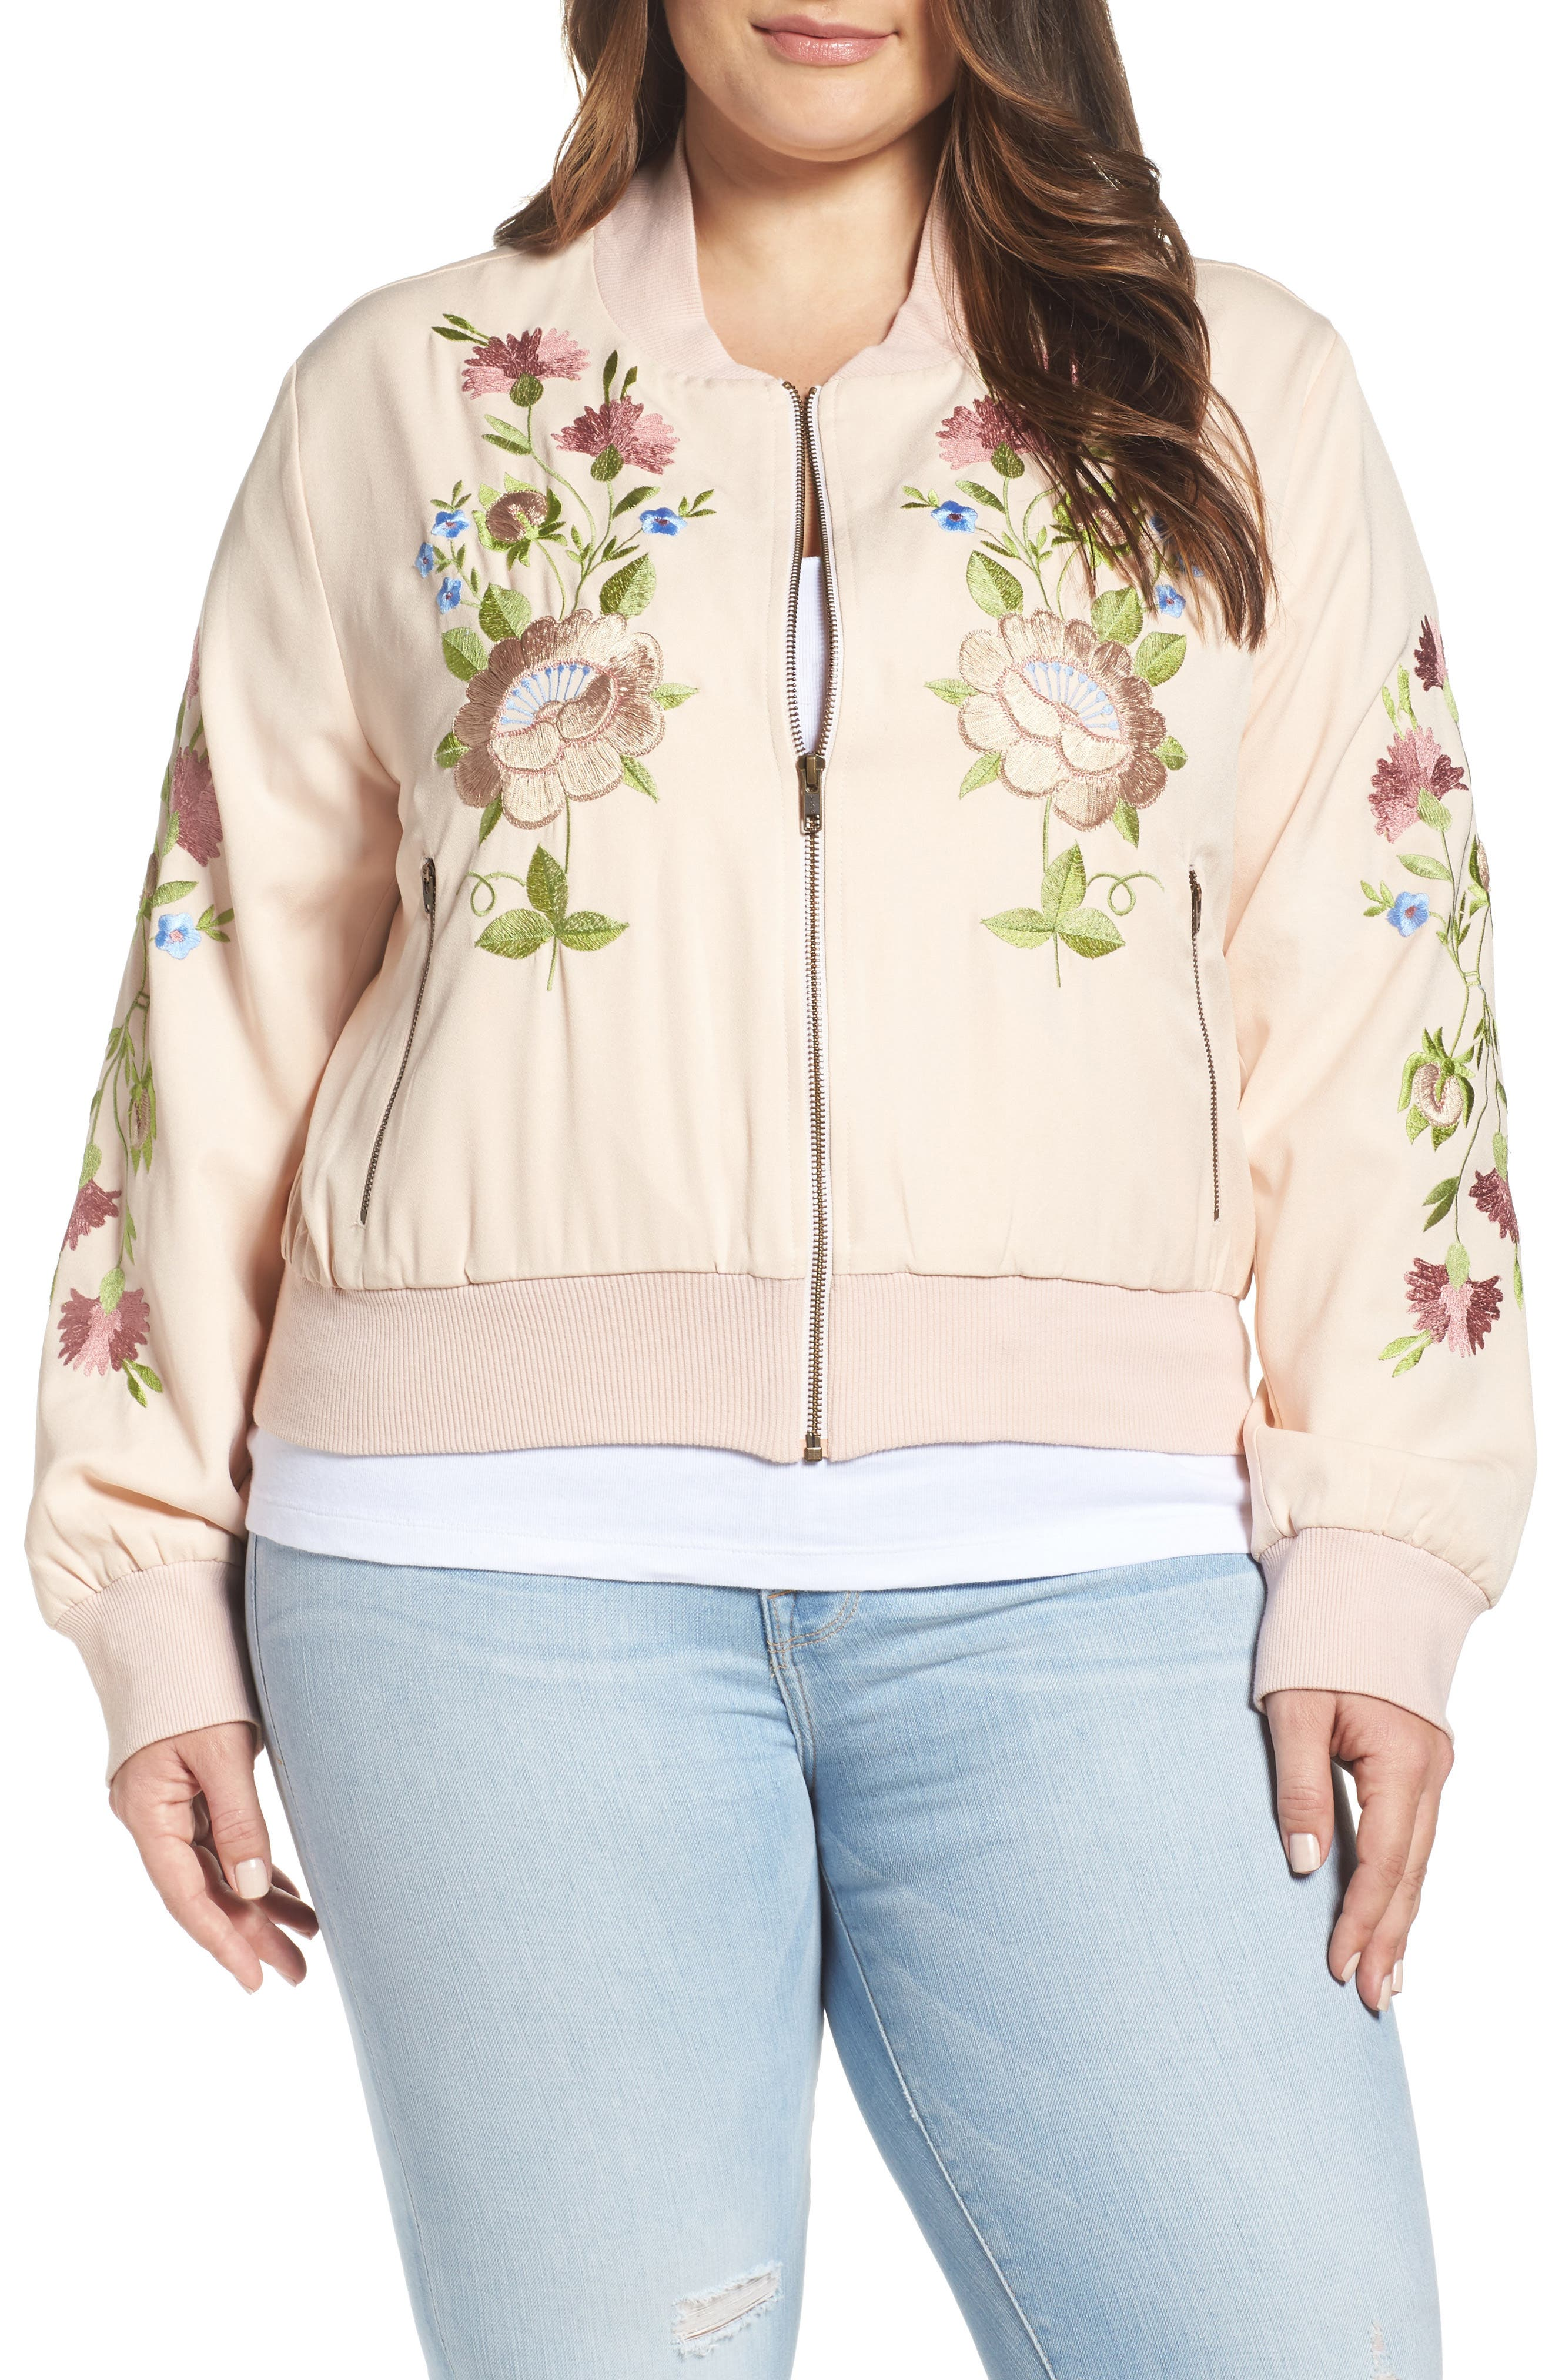 Alternate Image 1 Selected - Glamorous Floral Embroidered Bomber Jacket (Plus Size)